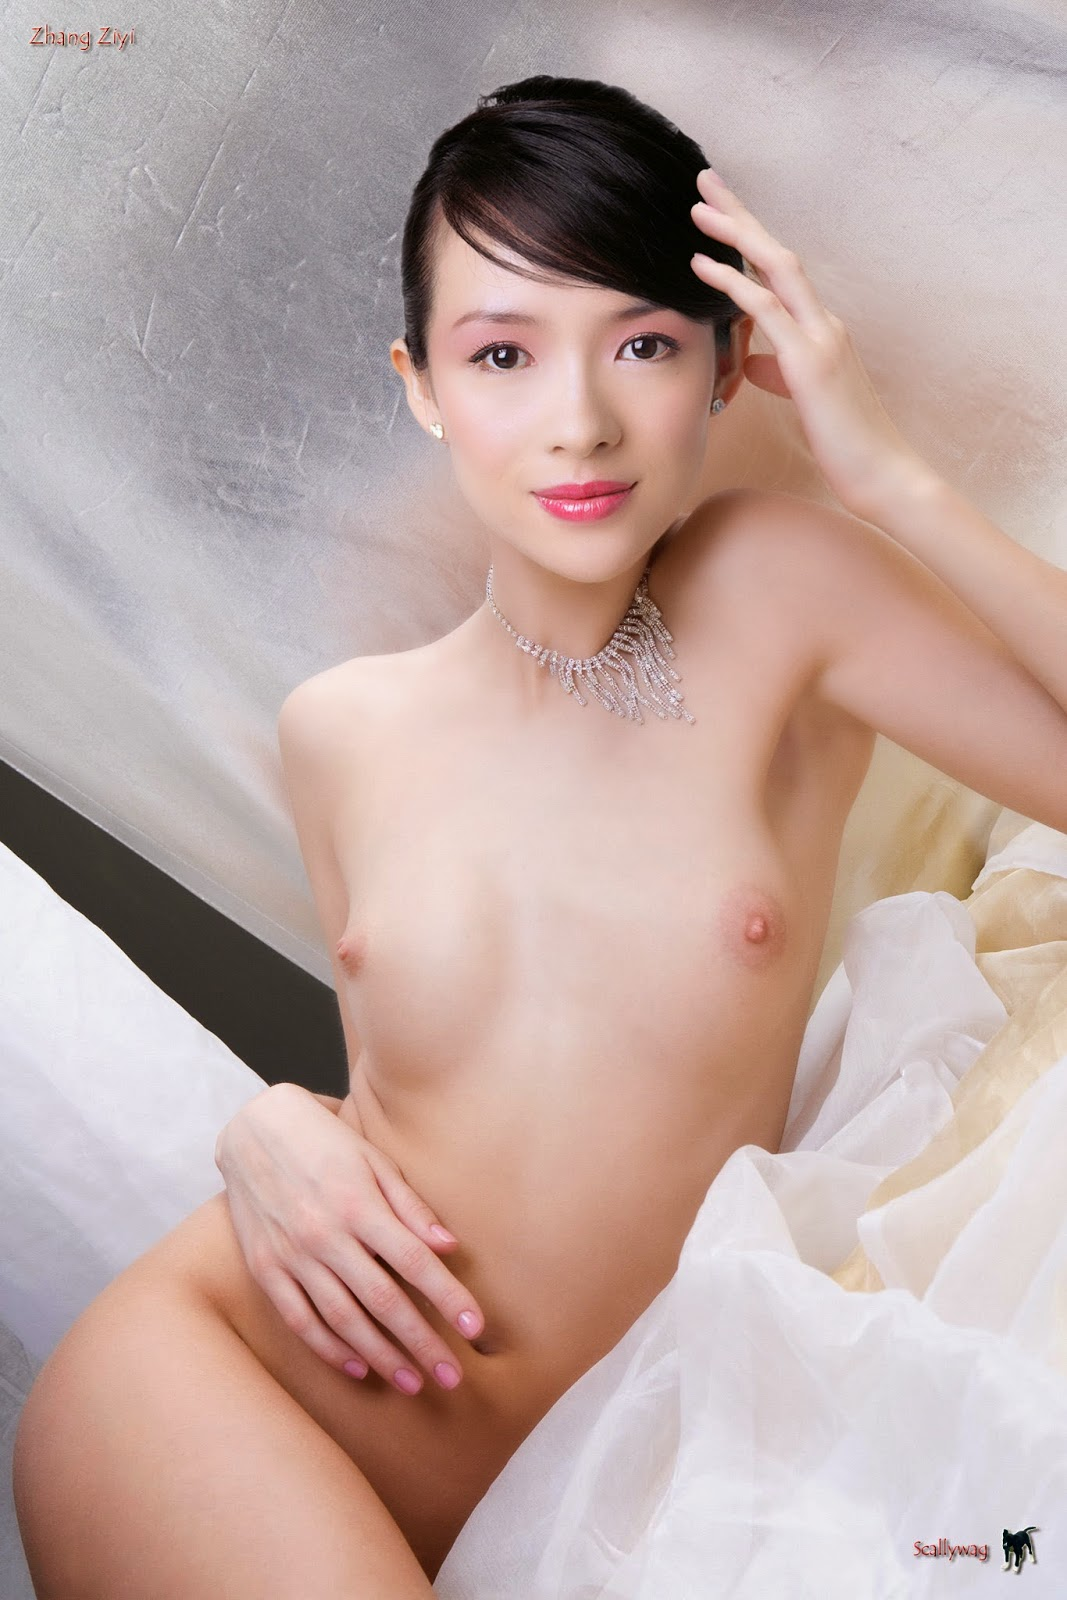 celebrity nude photos Chinese fake